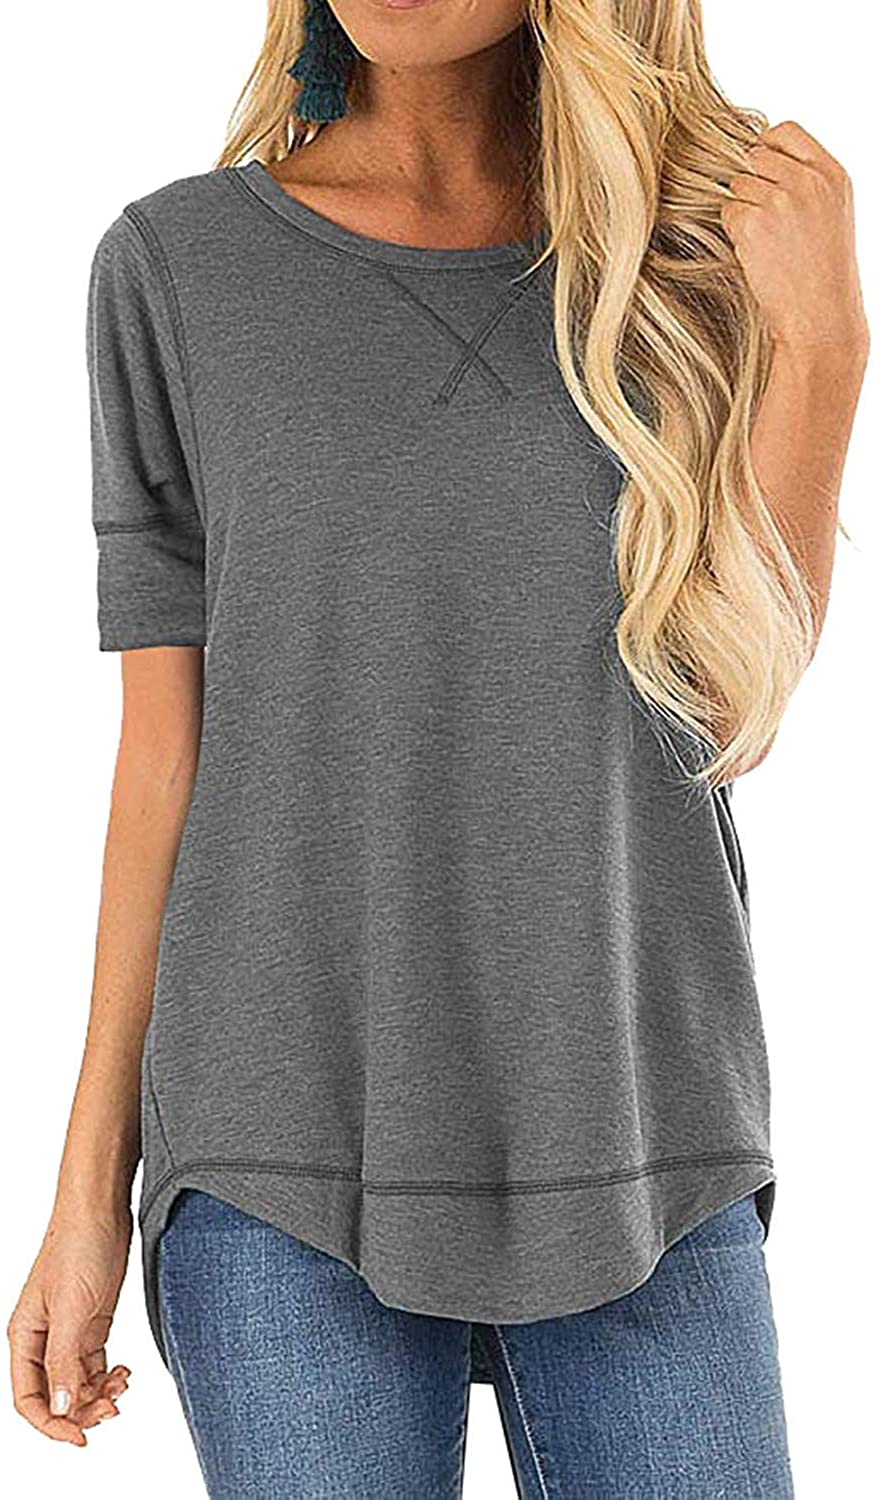 Haute Edition Causal Loose Fit Comfy Tops. Plus sizes avaiable